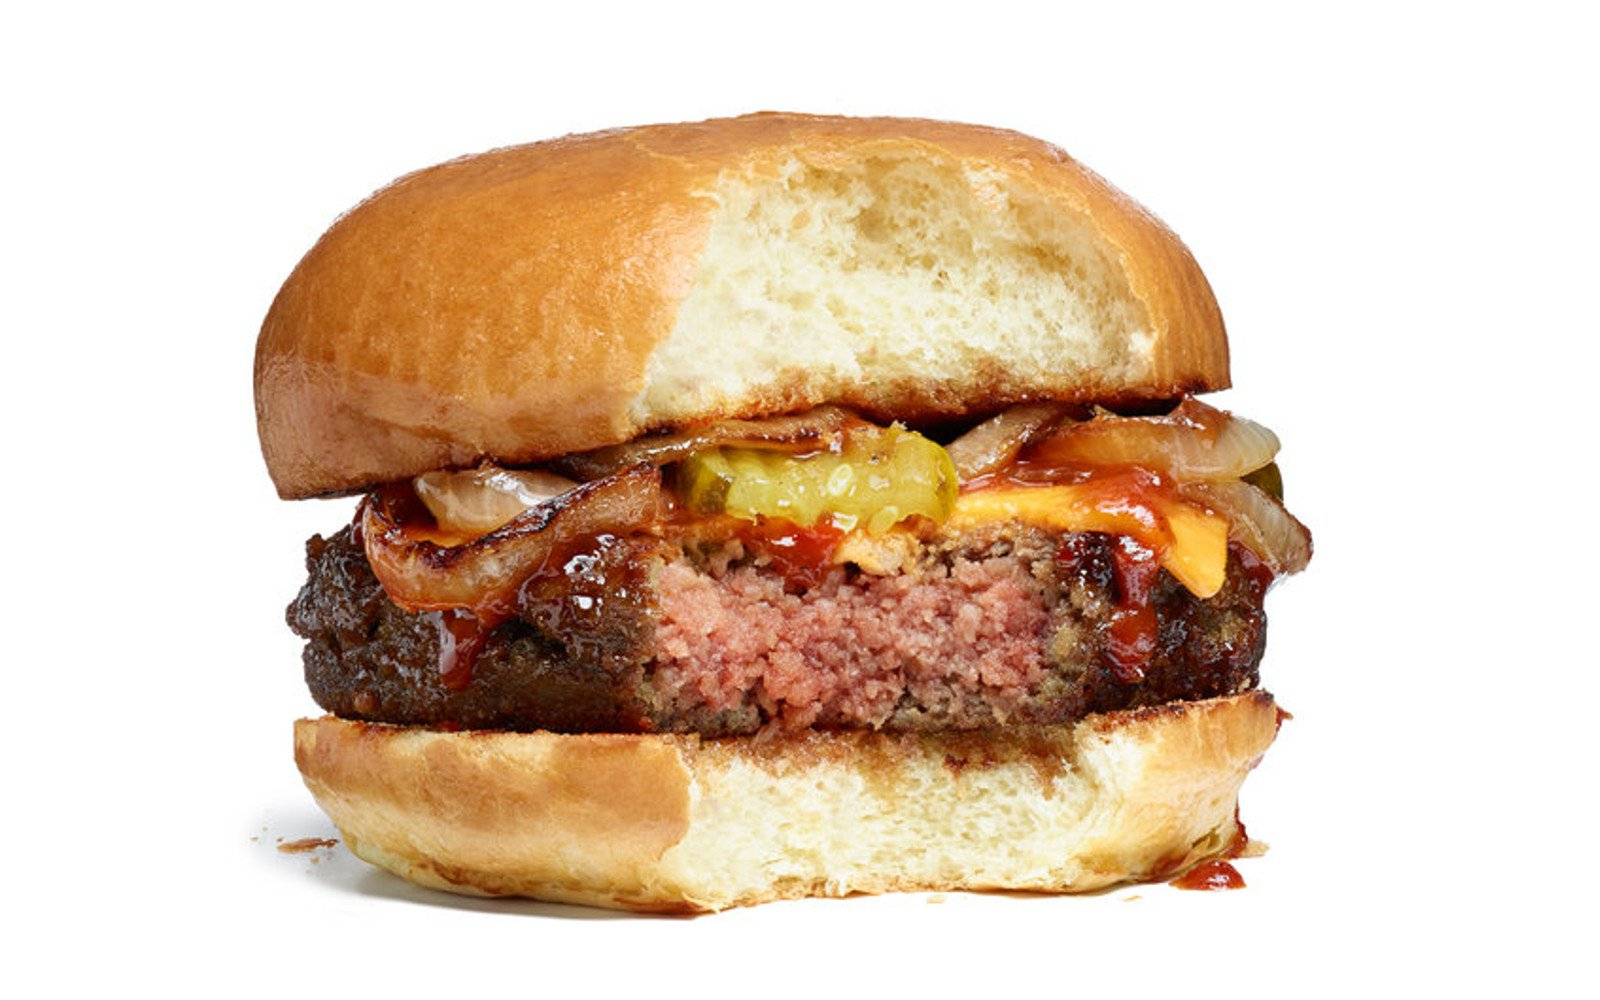 Has Impossible Burger pushed America to Peak Meat?